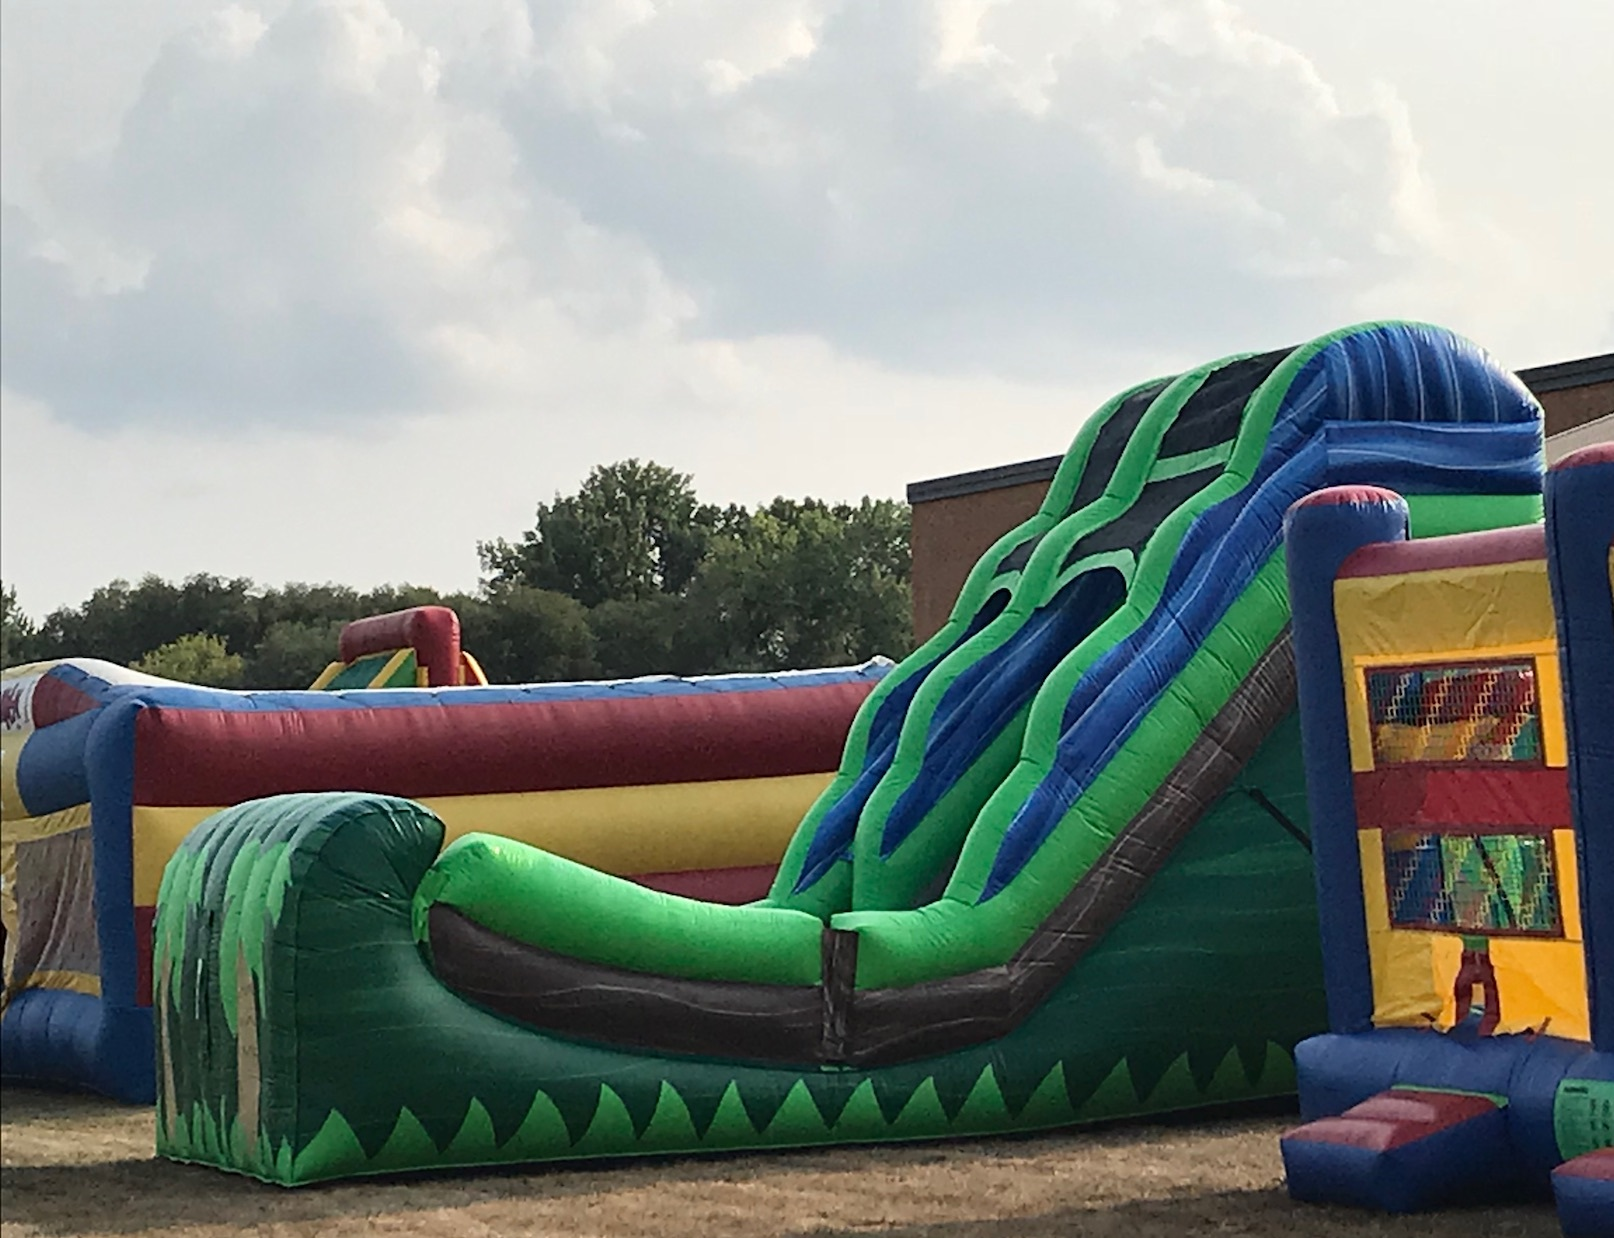 16ft. Jungle slidedry- $195.00 + taxWET- $235.00 + tax - Slides may be used as normal dry slide or can be hooked up to a water hose for a amazing water slide experience that makes hot summer days the best ever!